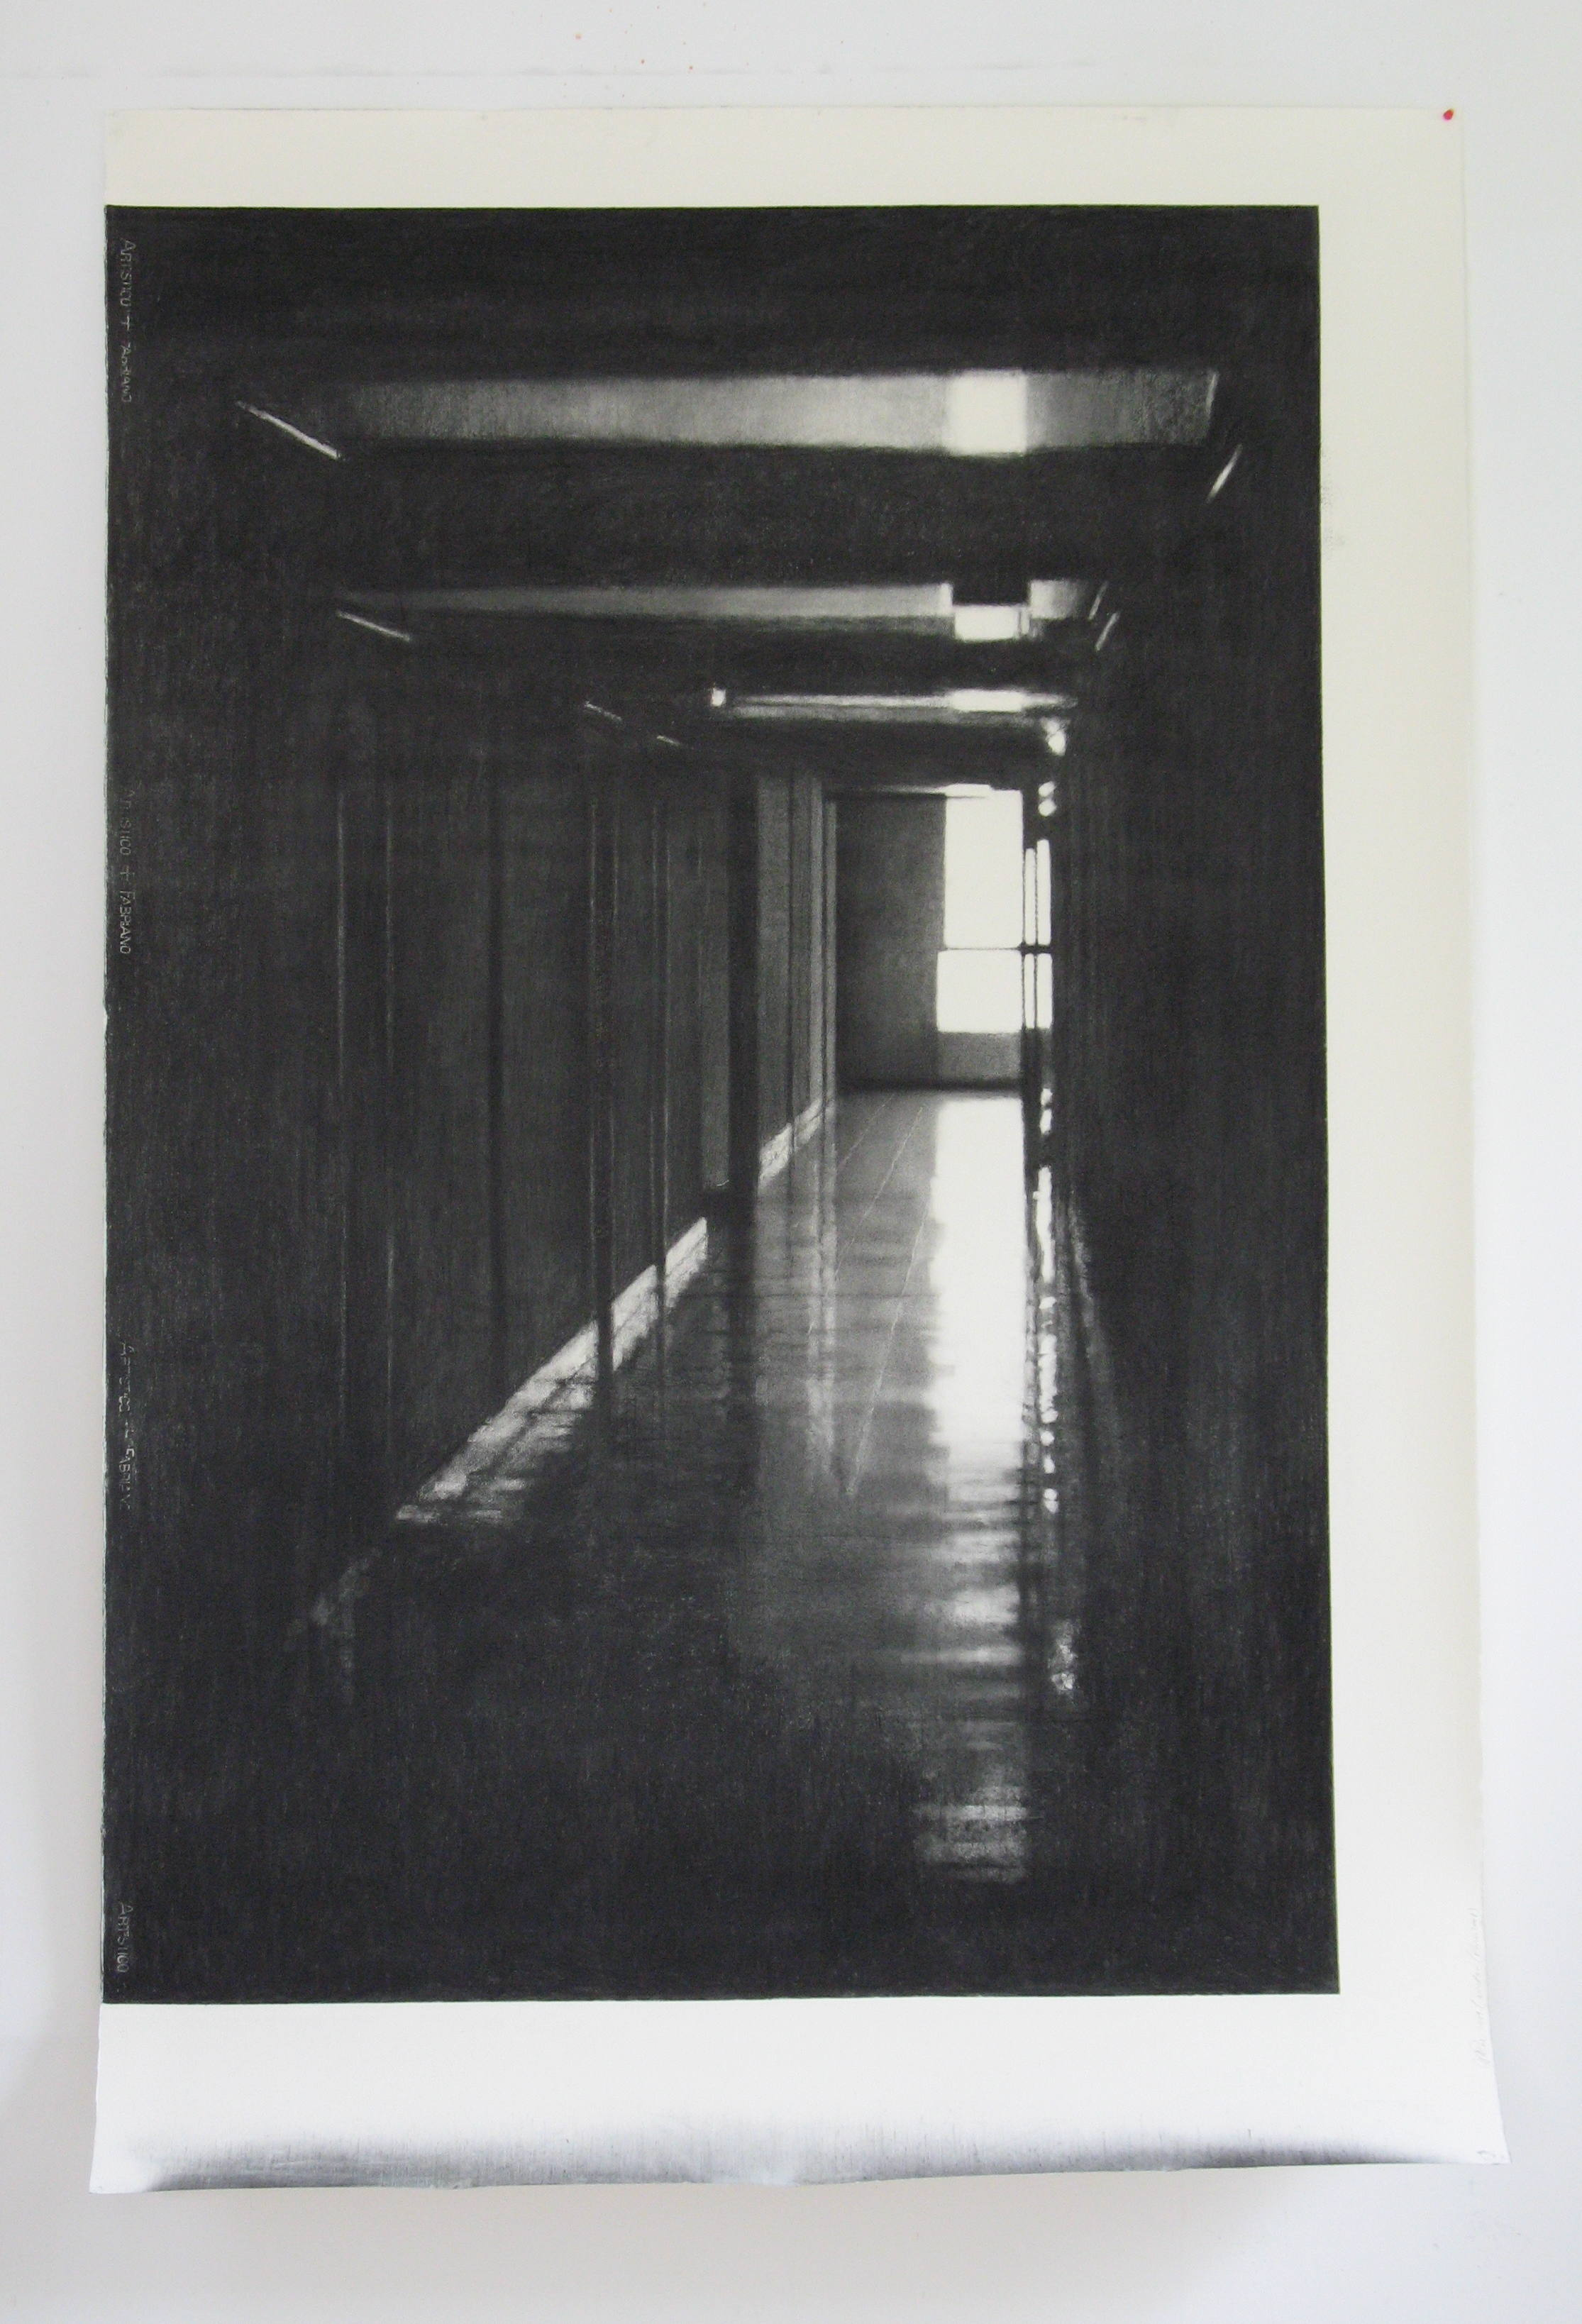 Drawing (Corridor, Cité des Arts), 2010, willow charcoal on Fabriano paper, 220x140cm.